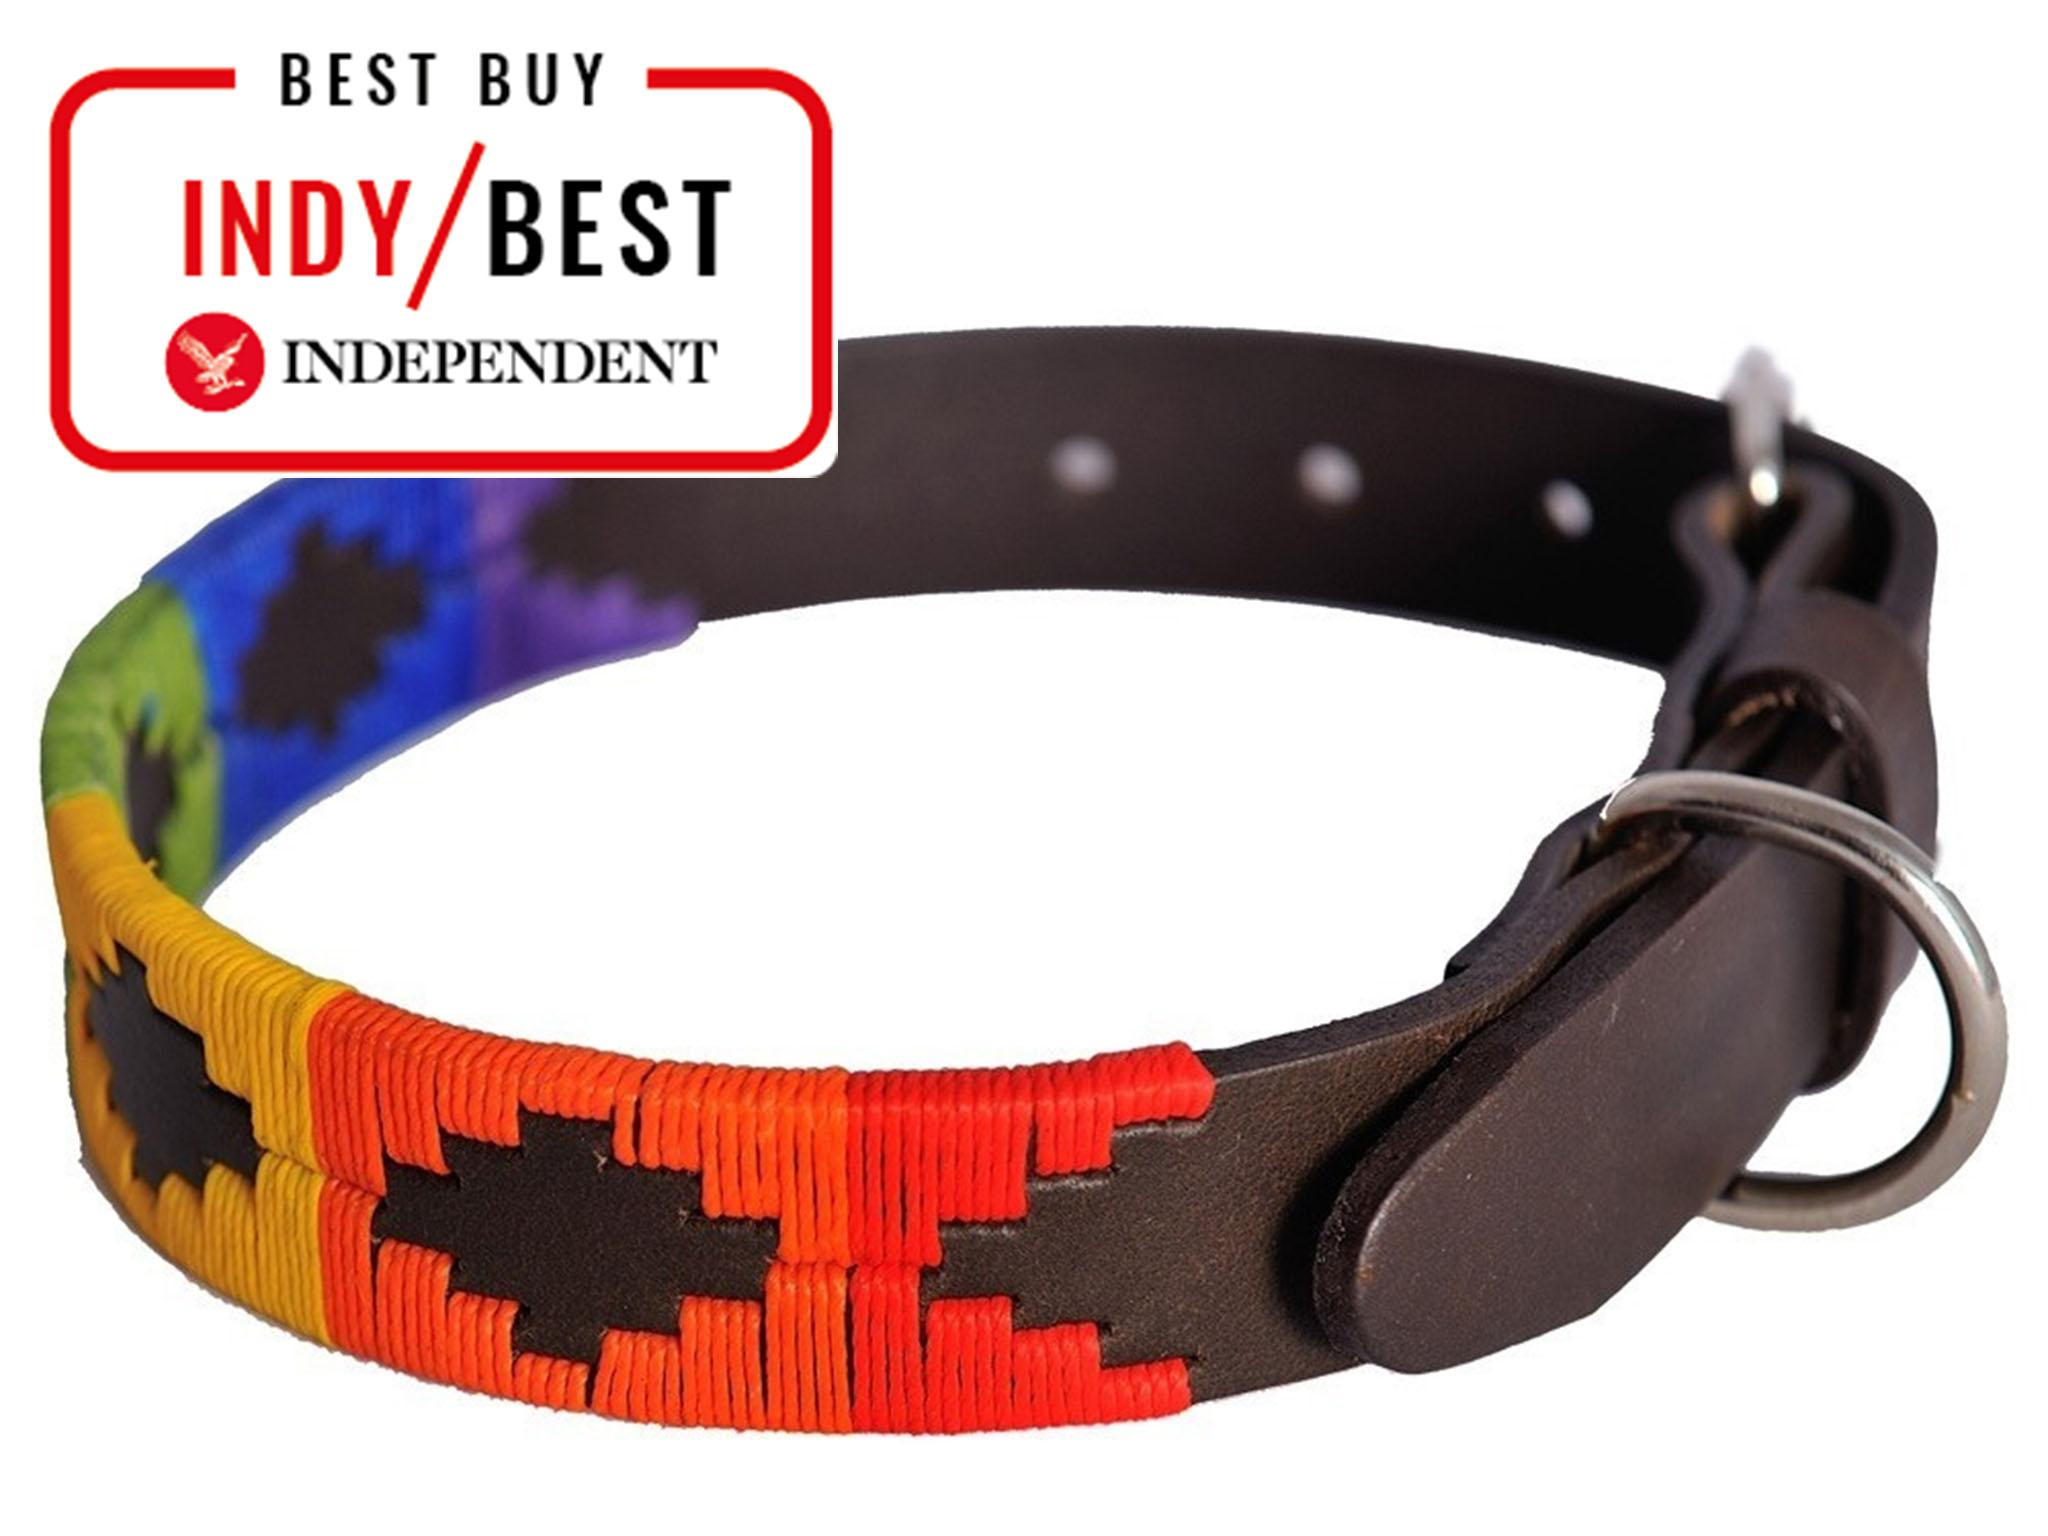 11 best dog collars | The Independent